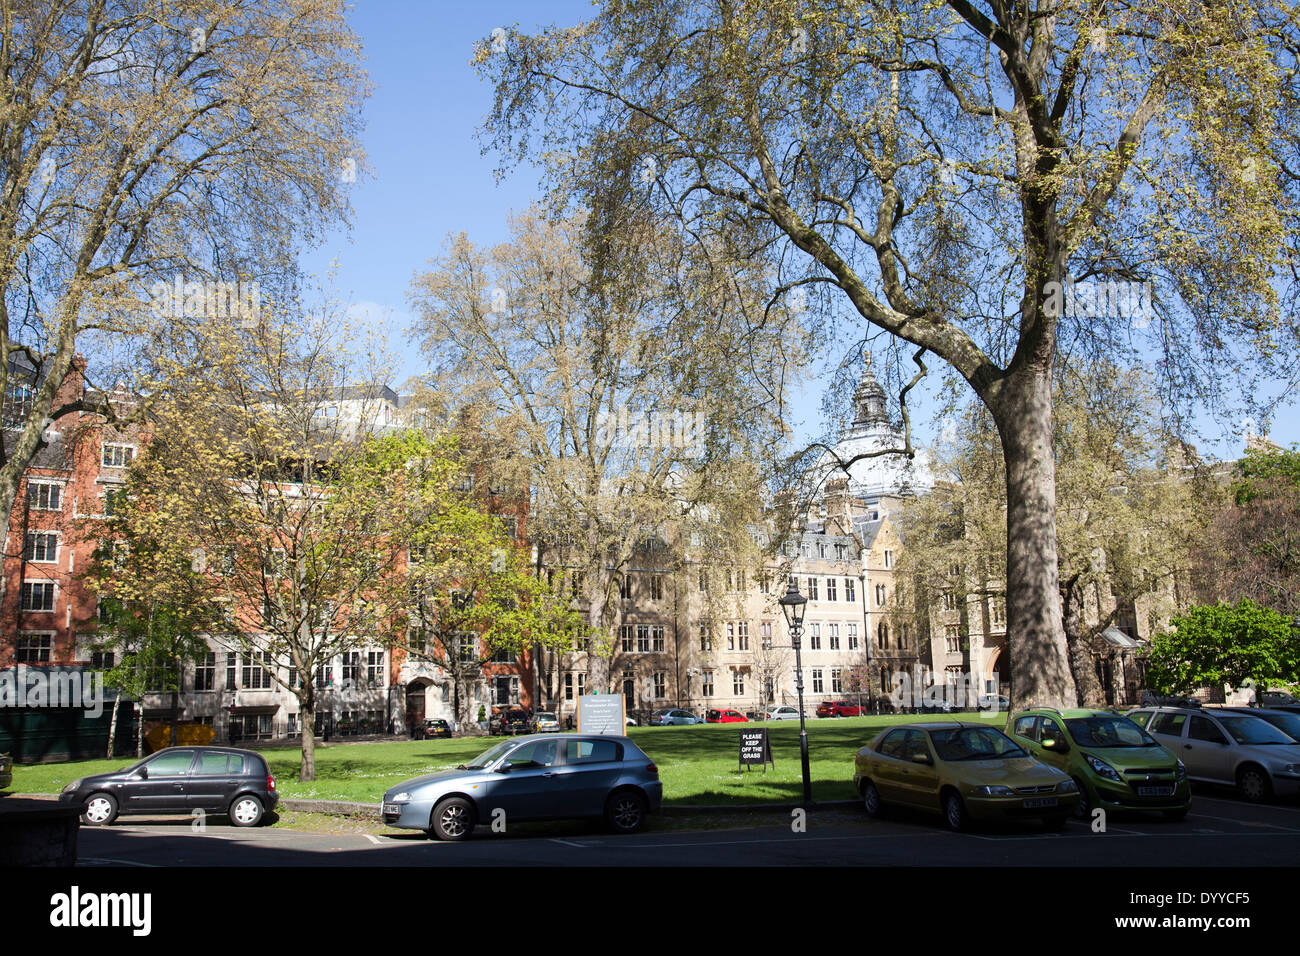 Deans Yard in Westminster - London W1 - UK - Stock Image